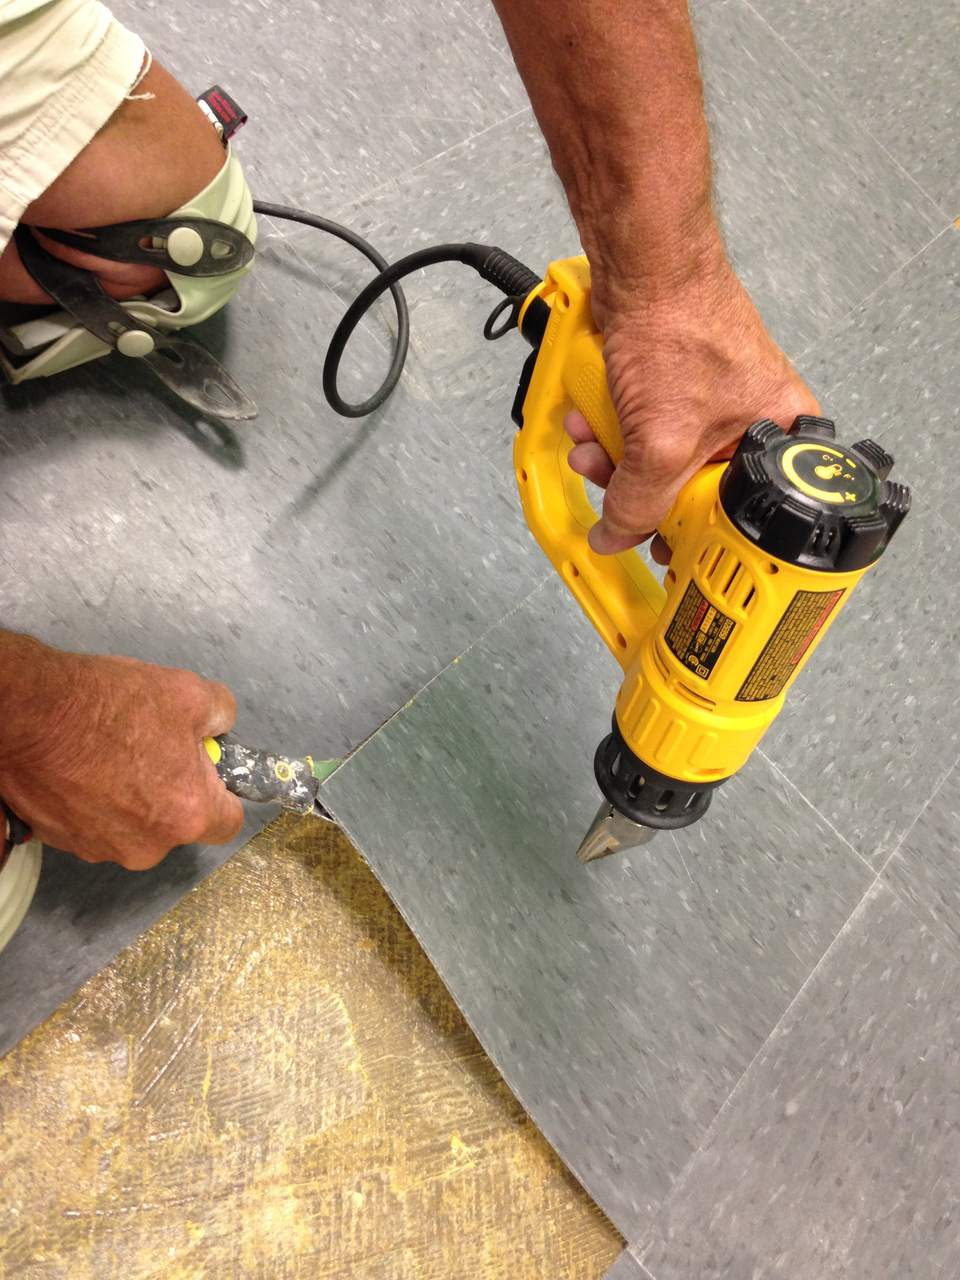 Removing Vinyl Flooring with a Heat Gun